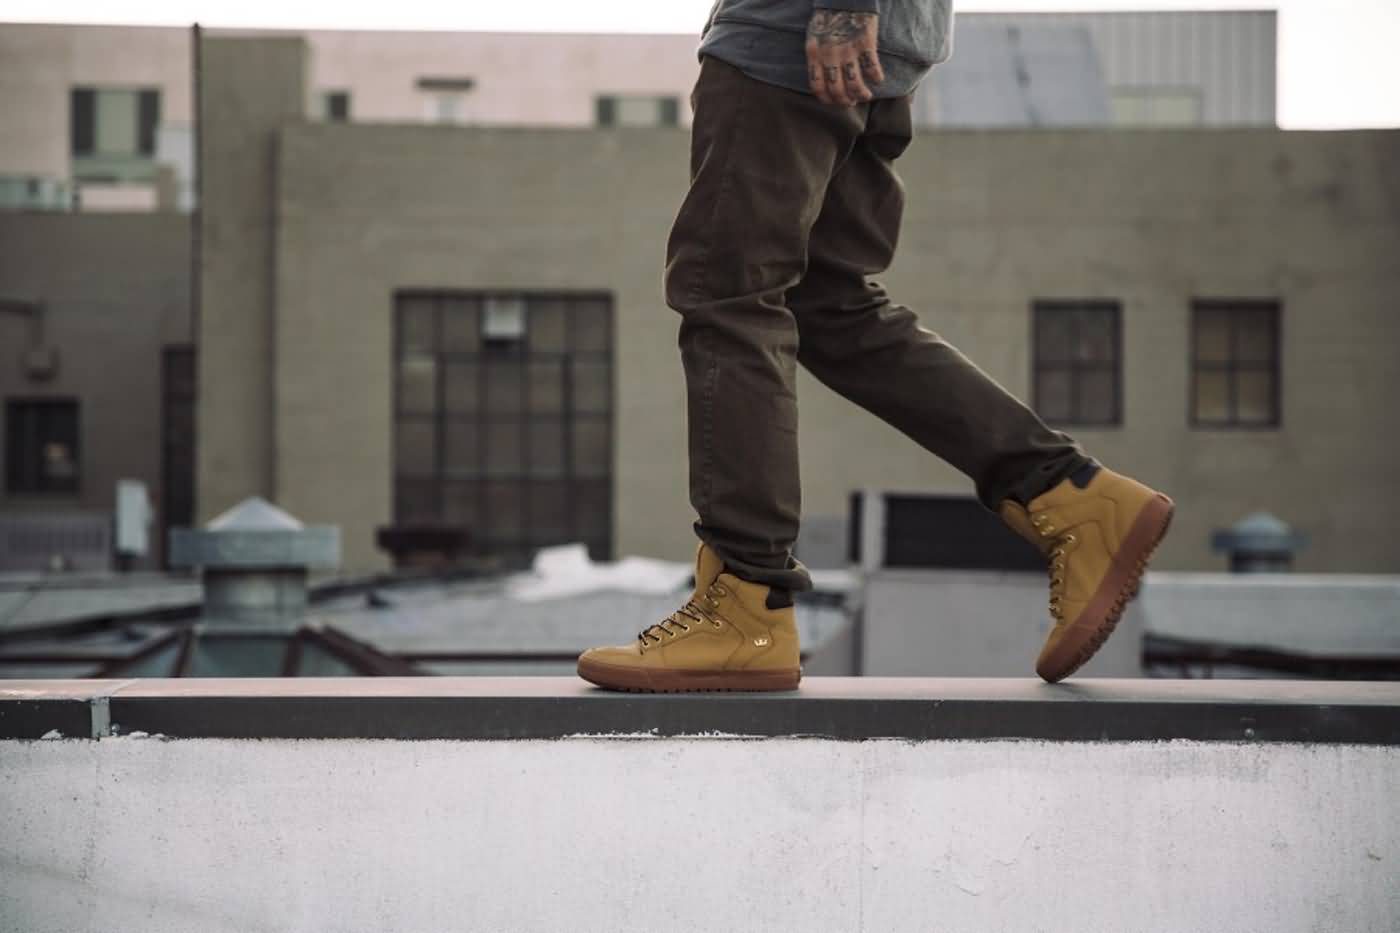 Supra Skate 2017: Introducing The Vaider CW Skateboarding Shoes